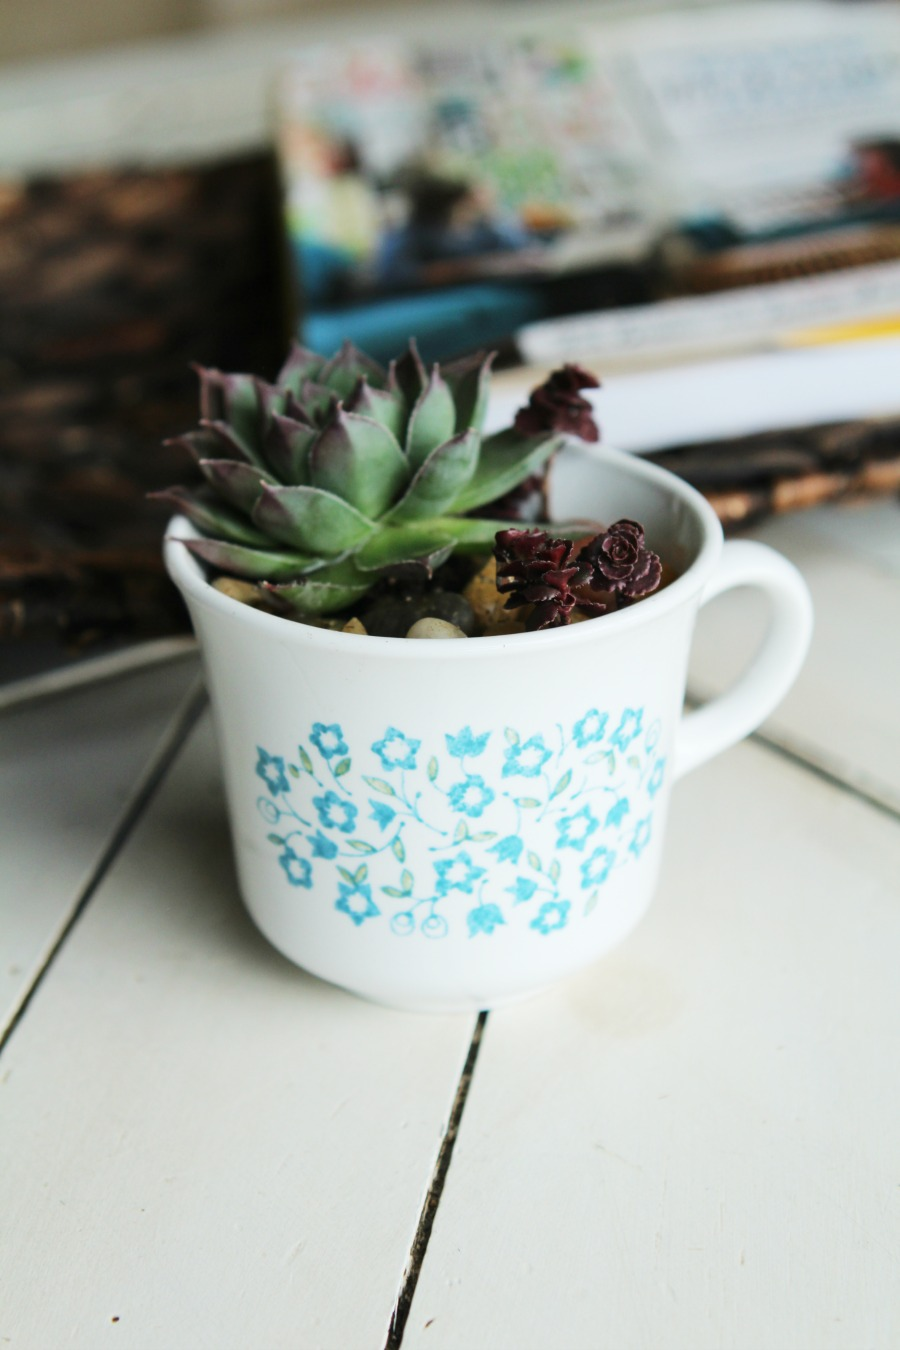 Have a black thumb? Turn your black thumb to green with succulents! Seriously! These things are so easy to grow. Low maintenance plants that look pretty? Bonus! Check out this adorable DIY Succulent Teacup Planter. Makes an easy handmade gift idea! This would be so cute for Valentine's Day!